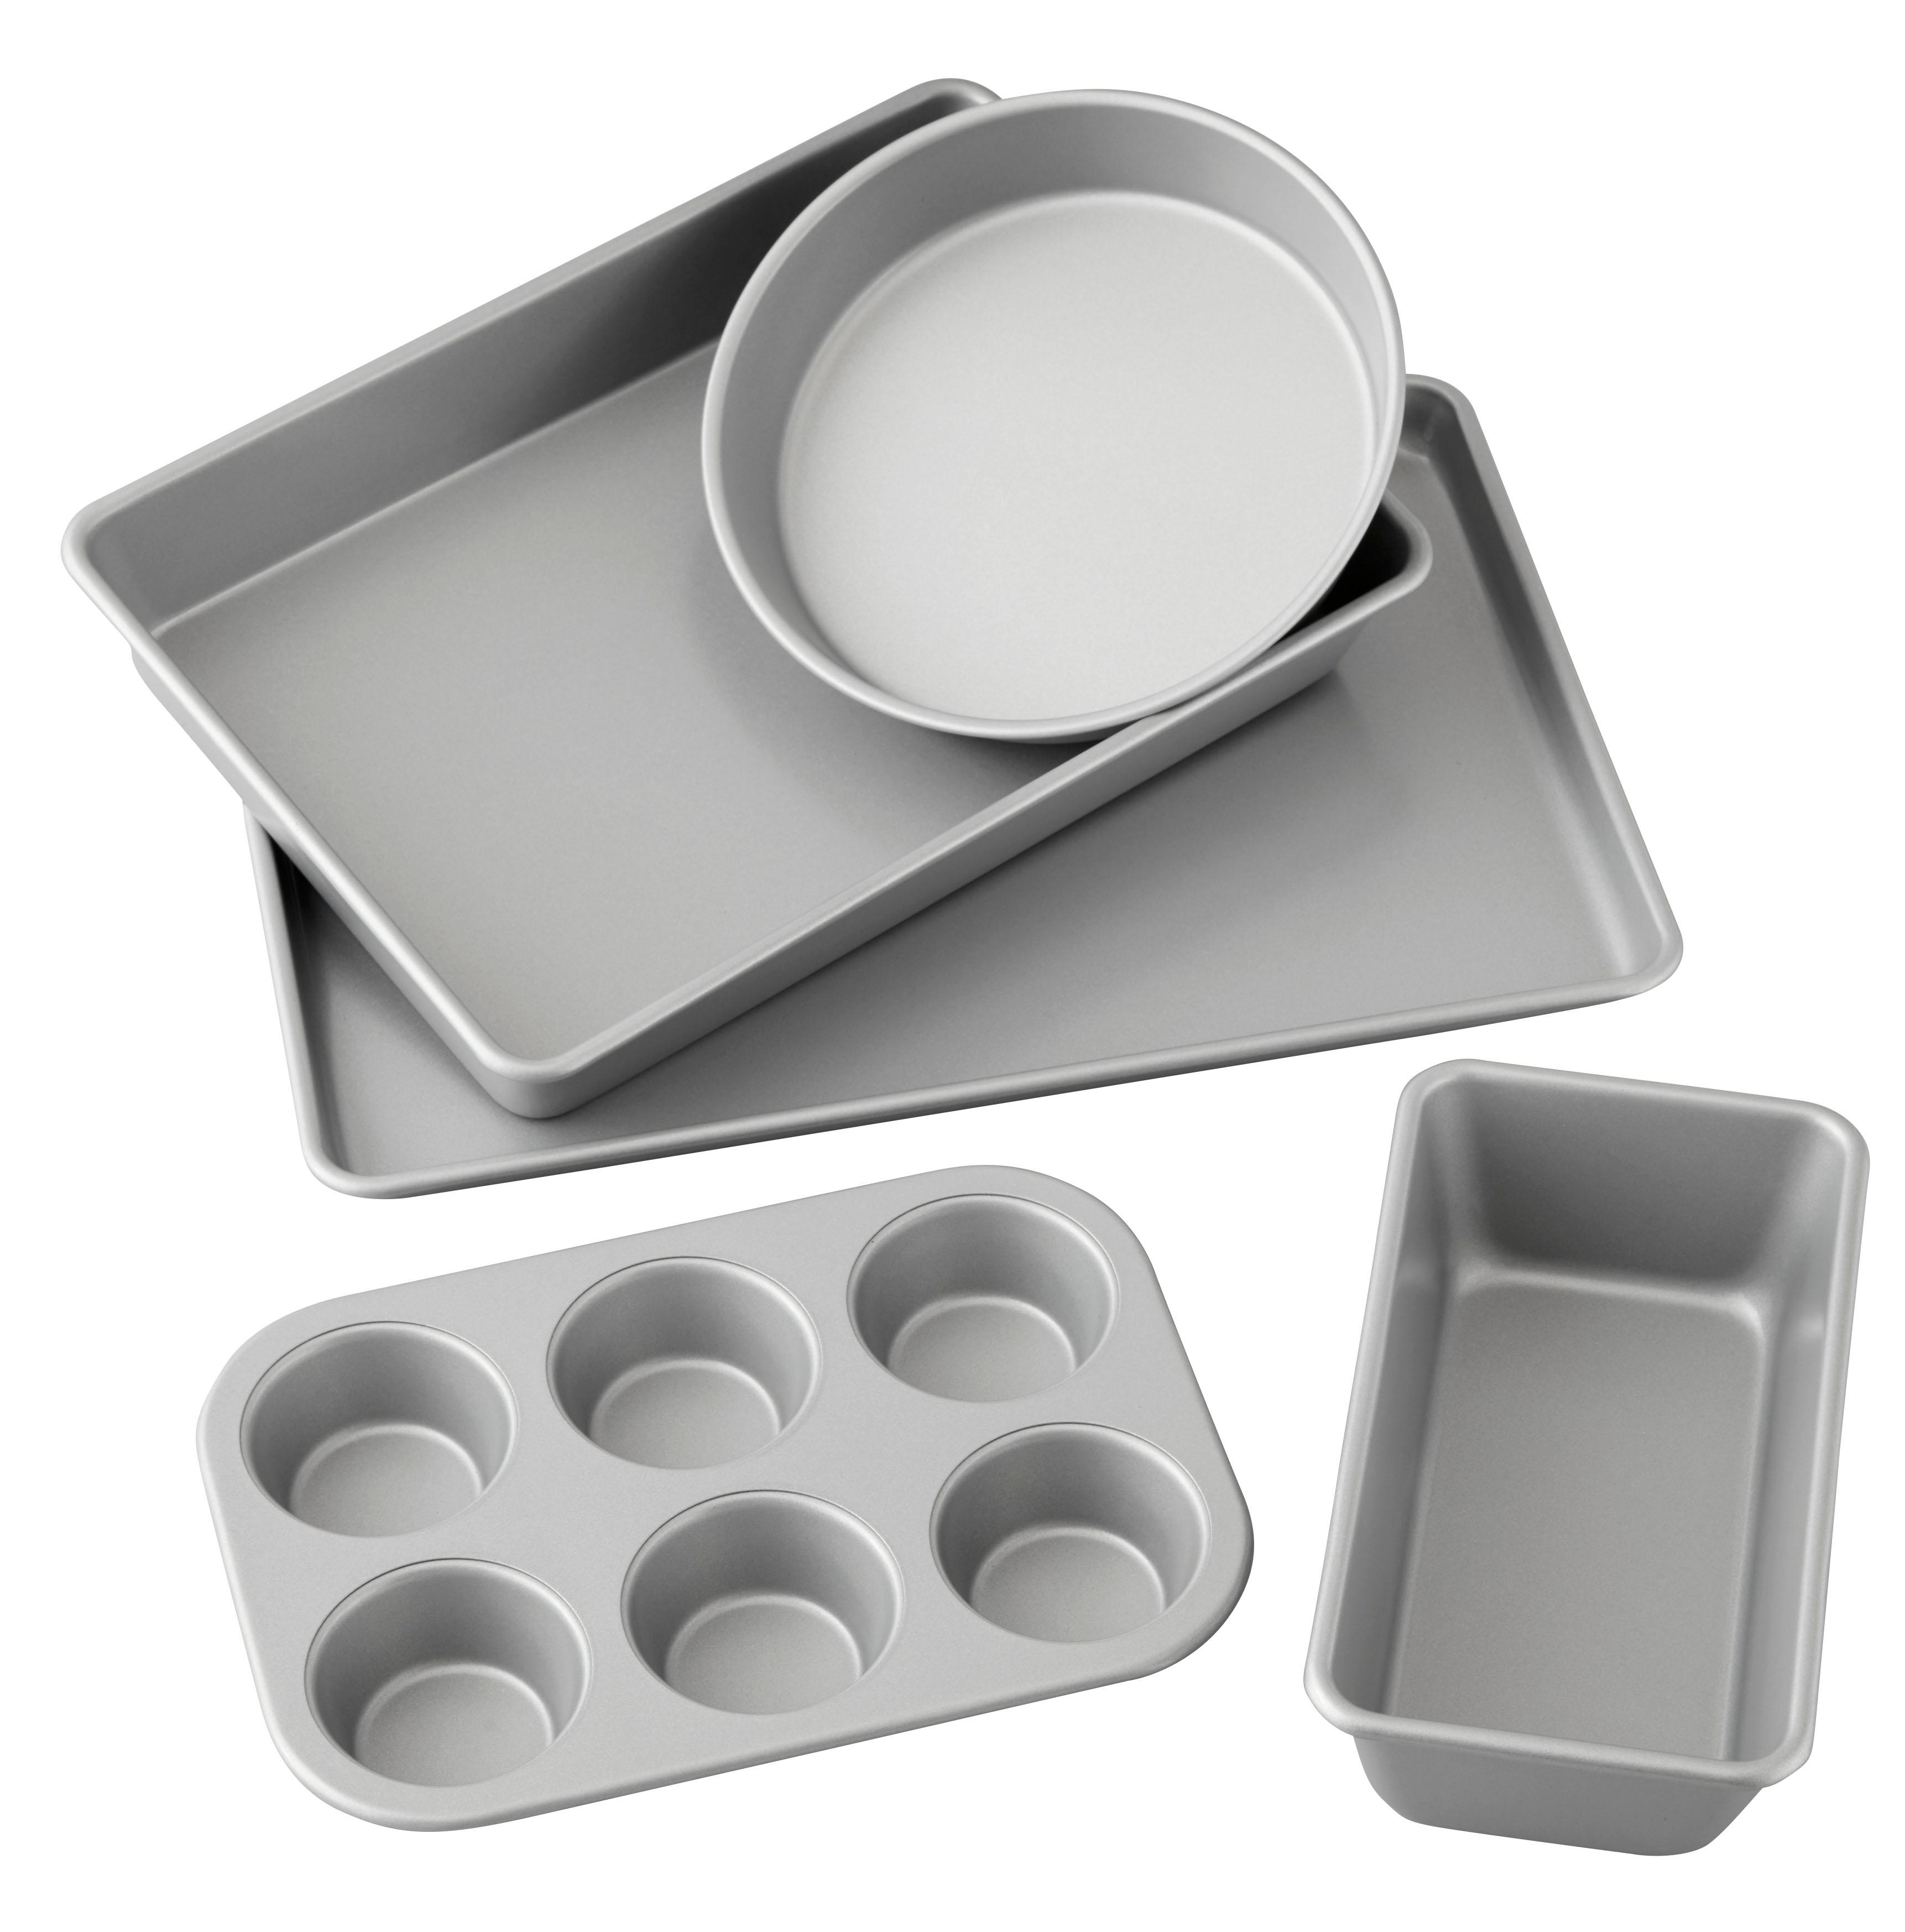 Amazon Com Wilton Best Value Non Stick Baking Set 5